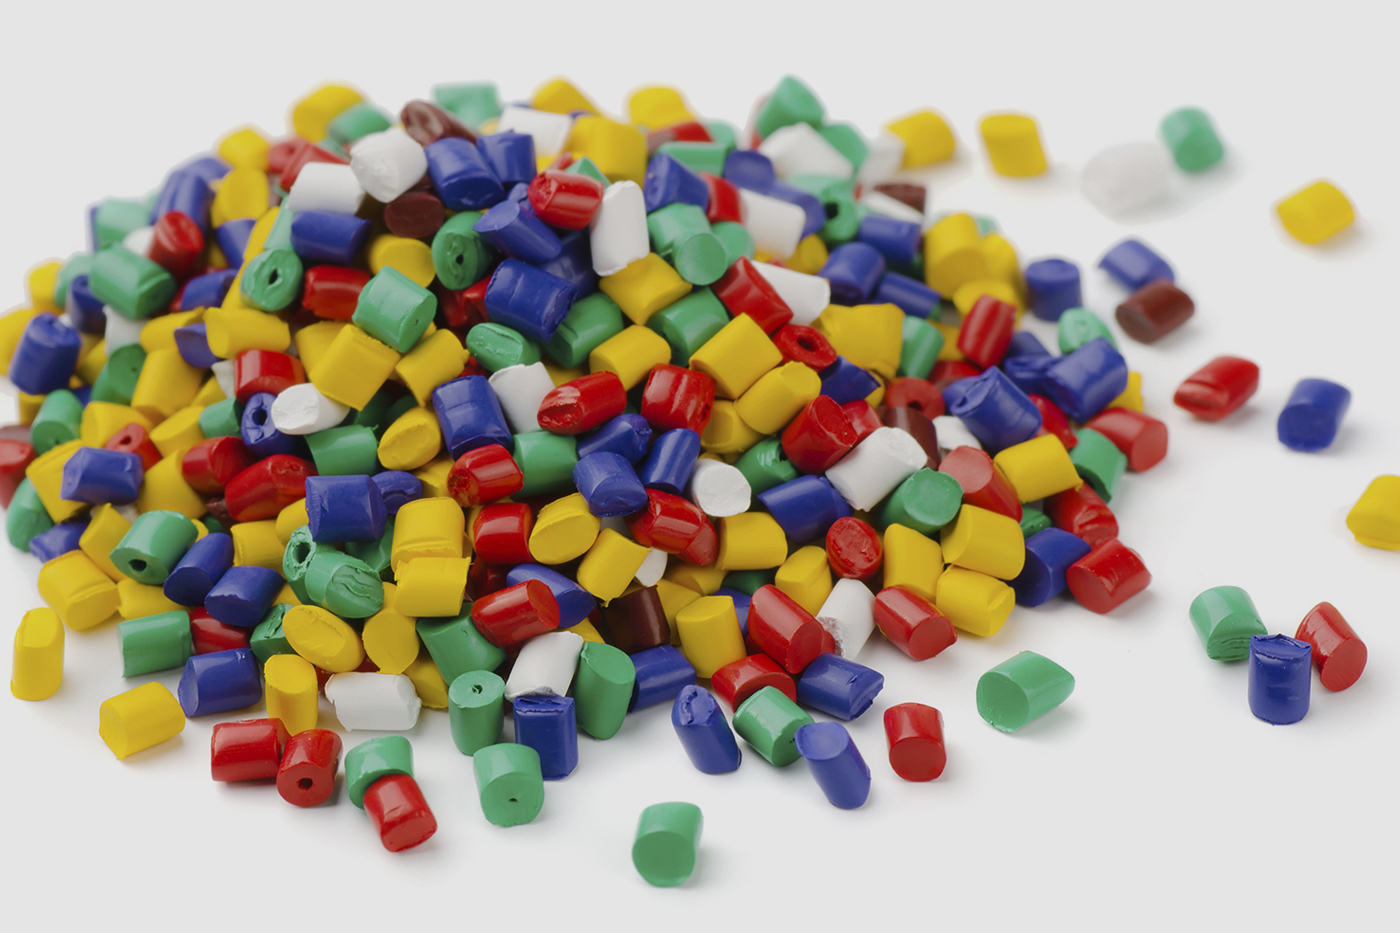 Shuman Plastics | Recycled Thermoplastic Materials Supplier